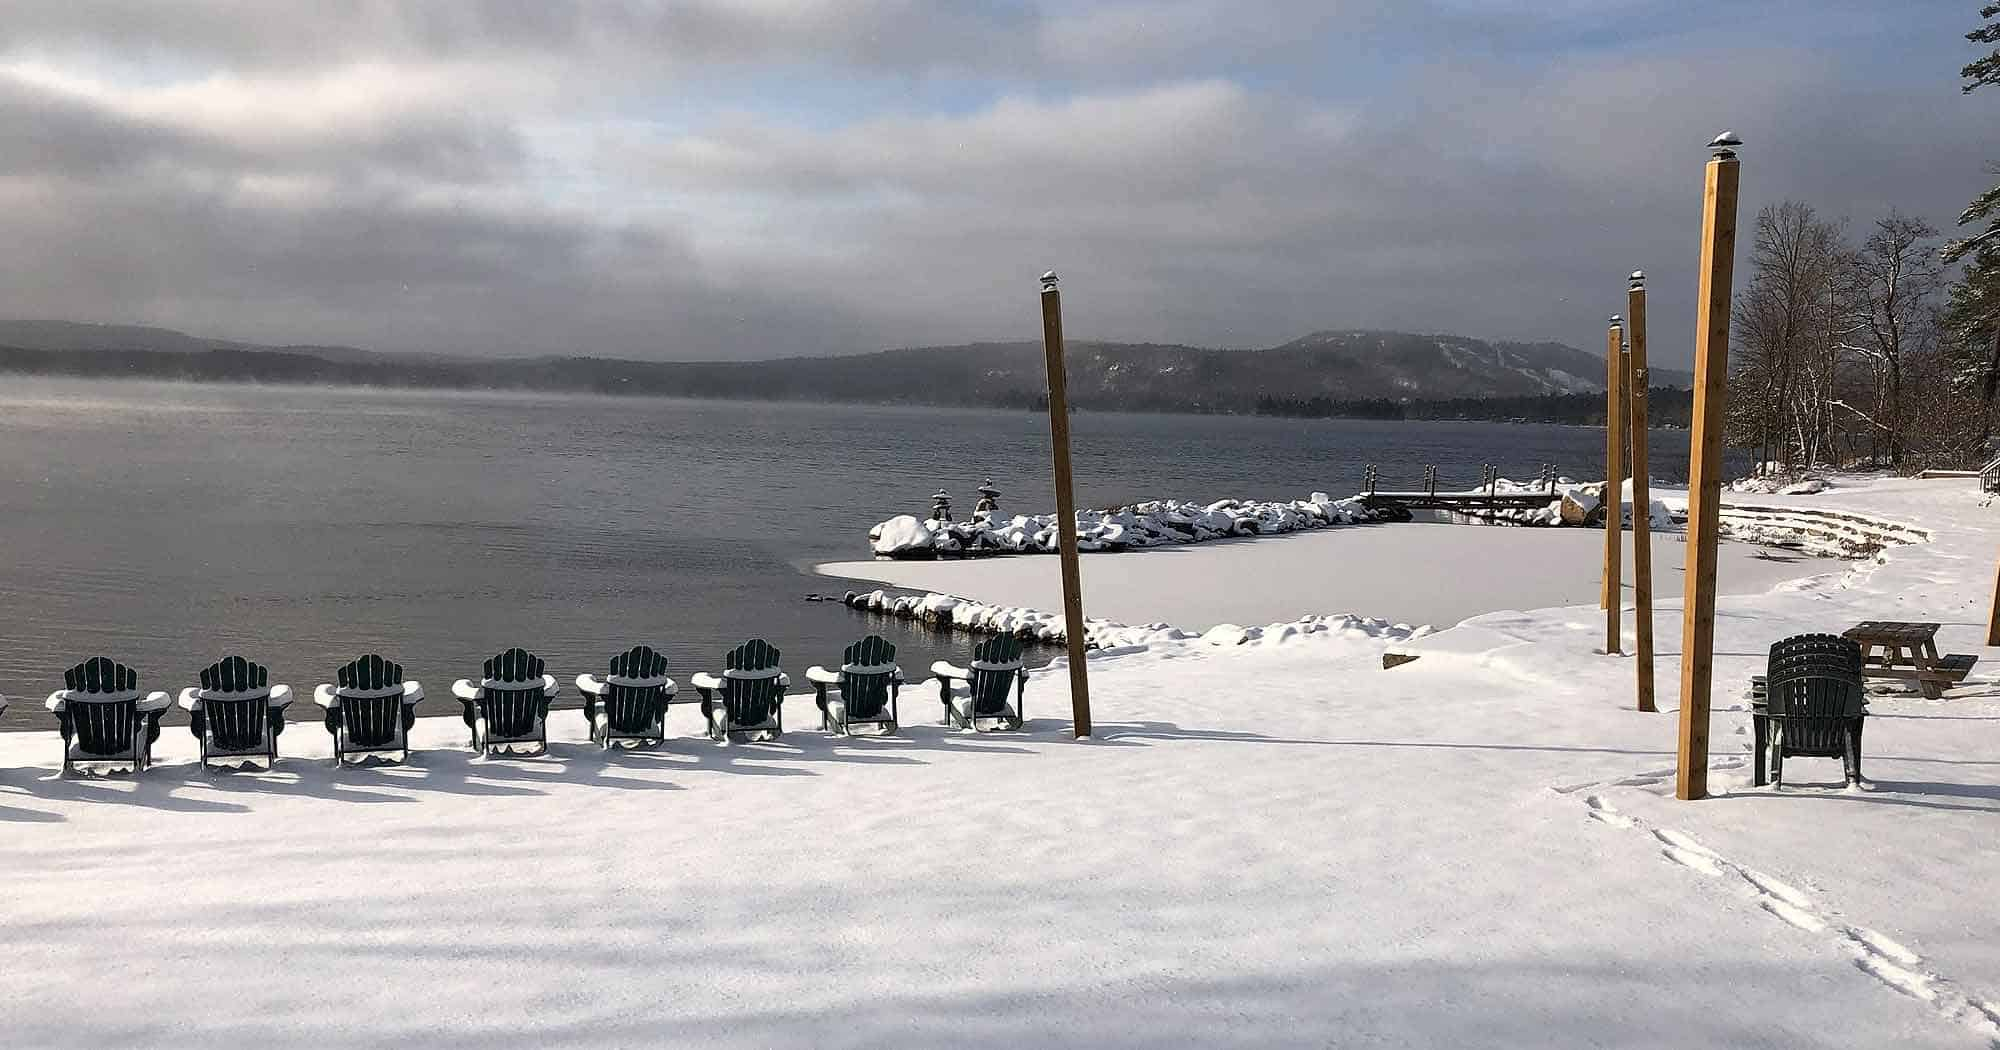 View of the beach in winter, Jocko's Beach Resort and Motel. Dickson Mountain in the background.